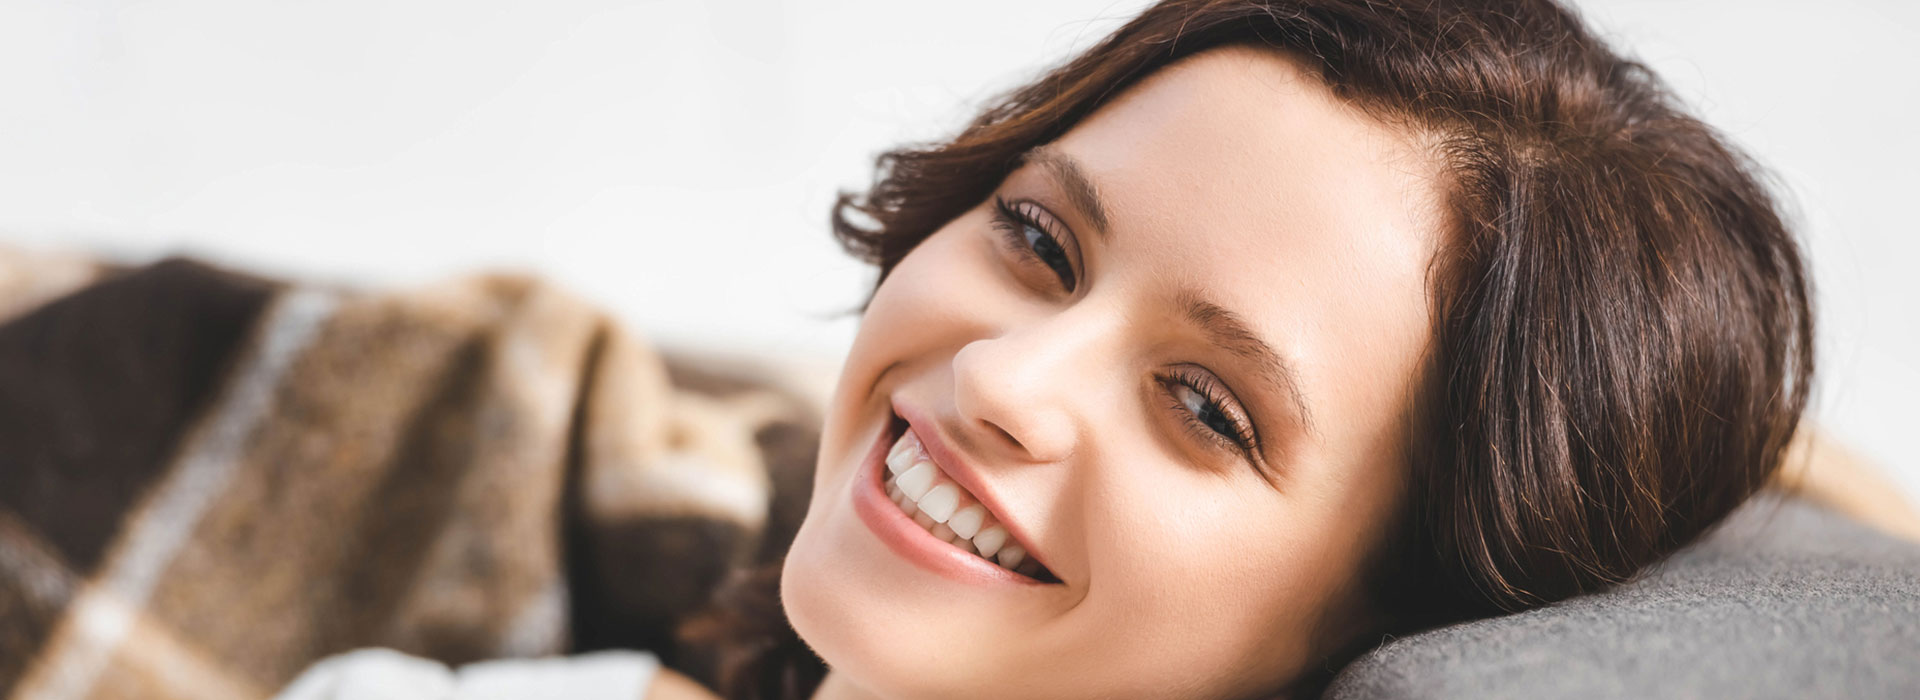 A beautiful woman is smiling after preventative dentistry